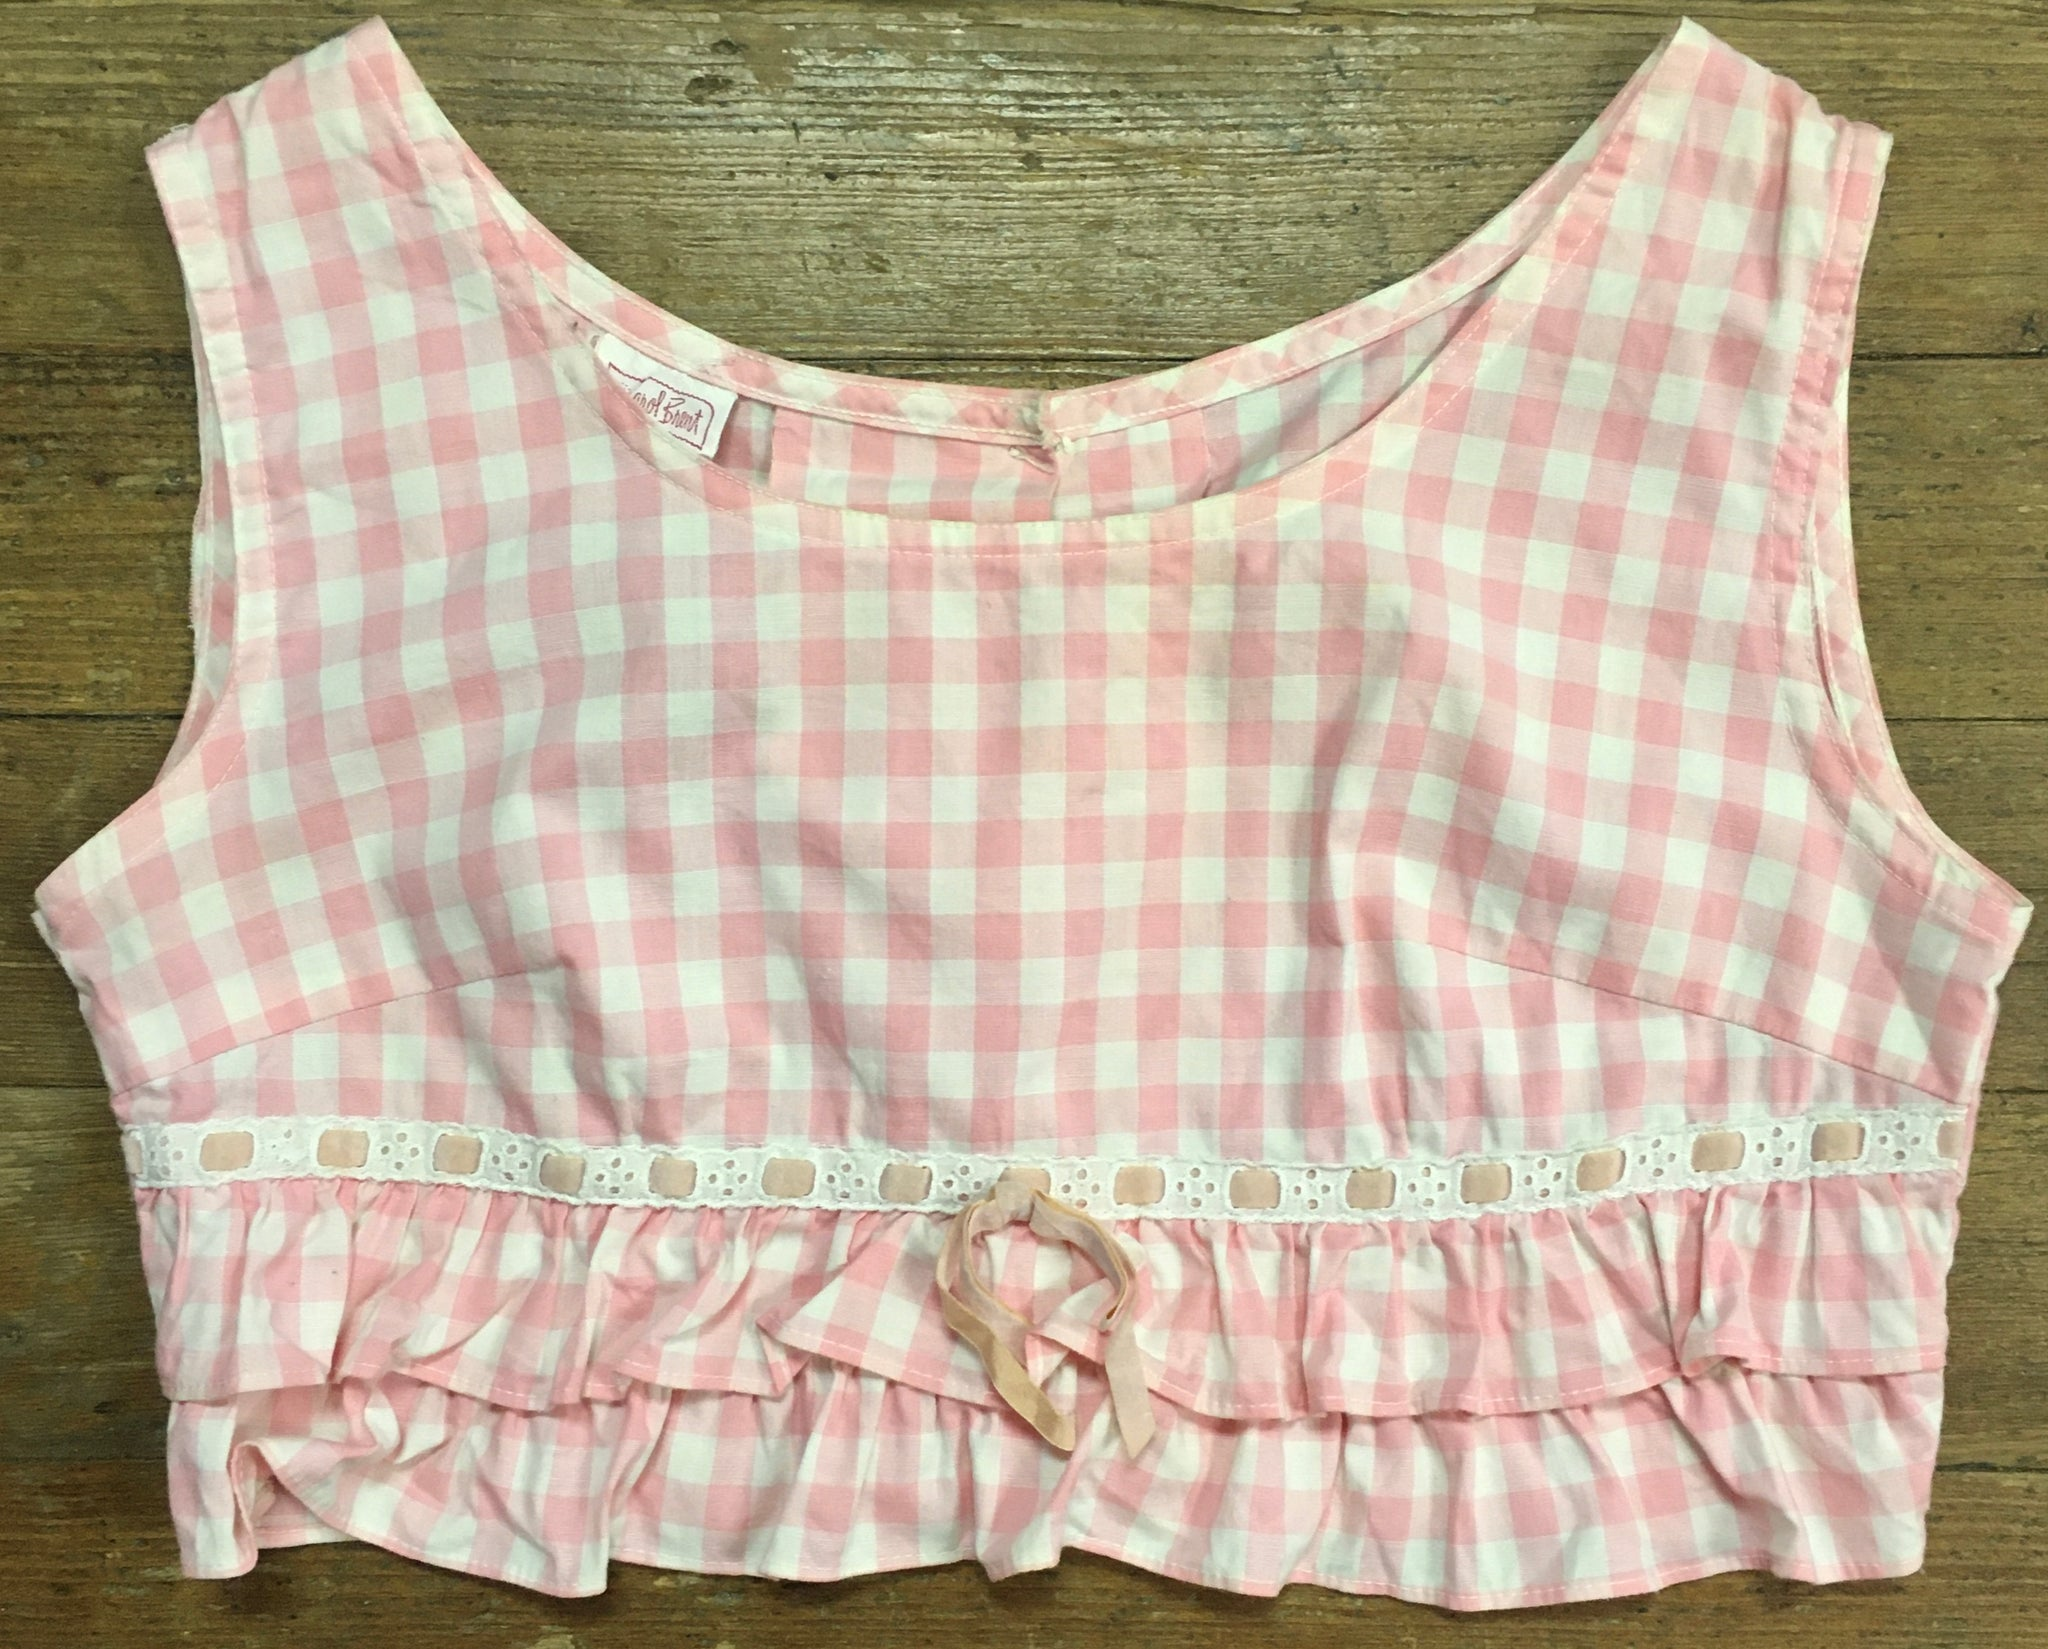 Clam Bake! Killer 50's-60's Gingham Crop Top